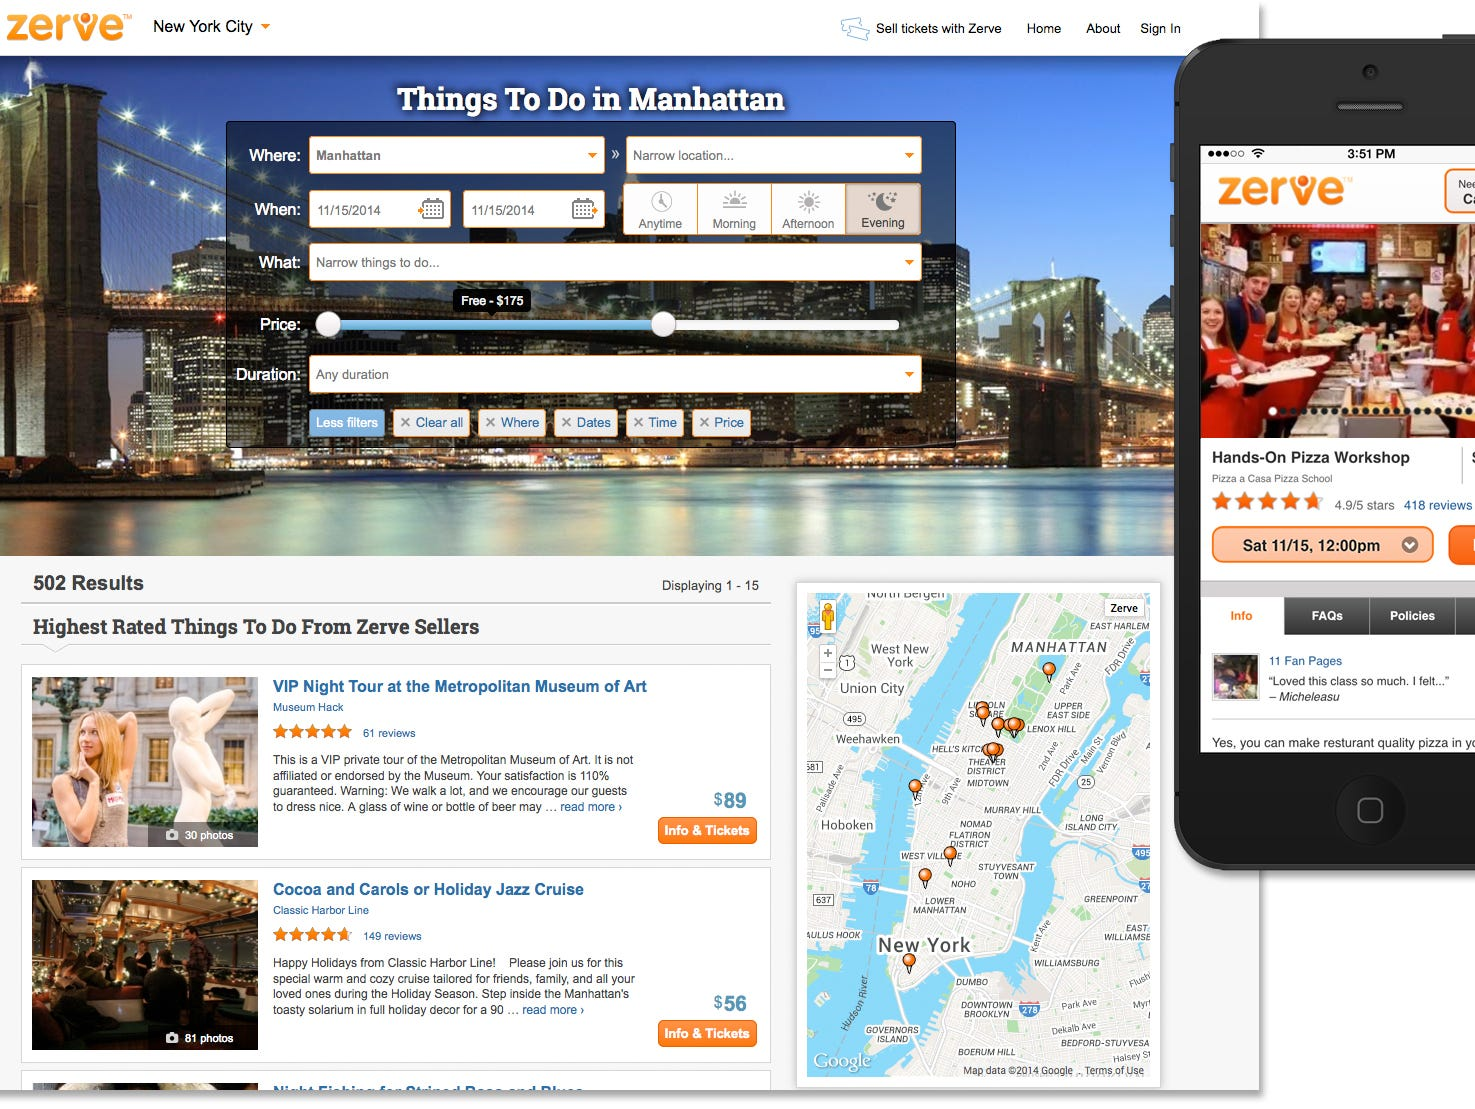 Lastly, a combined image of the two screenshots showing   the Zerve online services' Manhattan browsing page and an iPhone showing Zerve's mobile product page for the Hands-On Pizza Making Workshop in Manhattan.